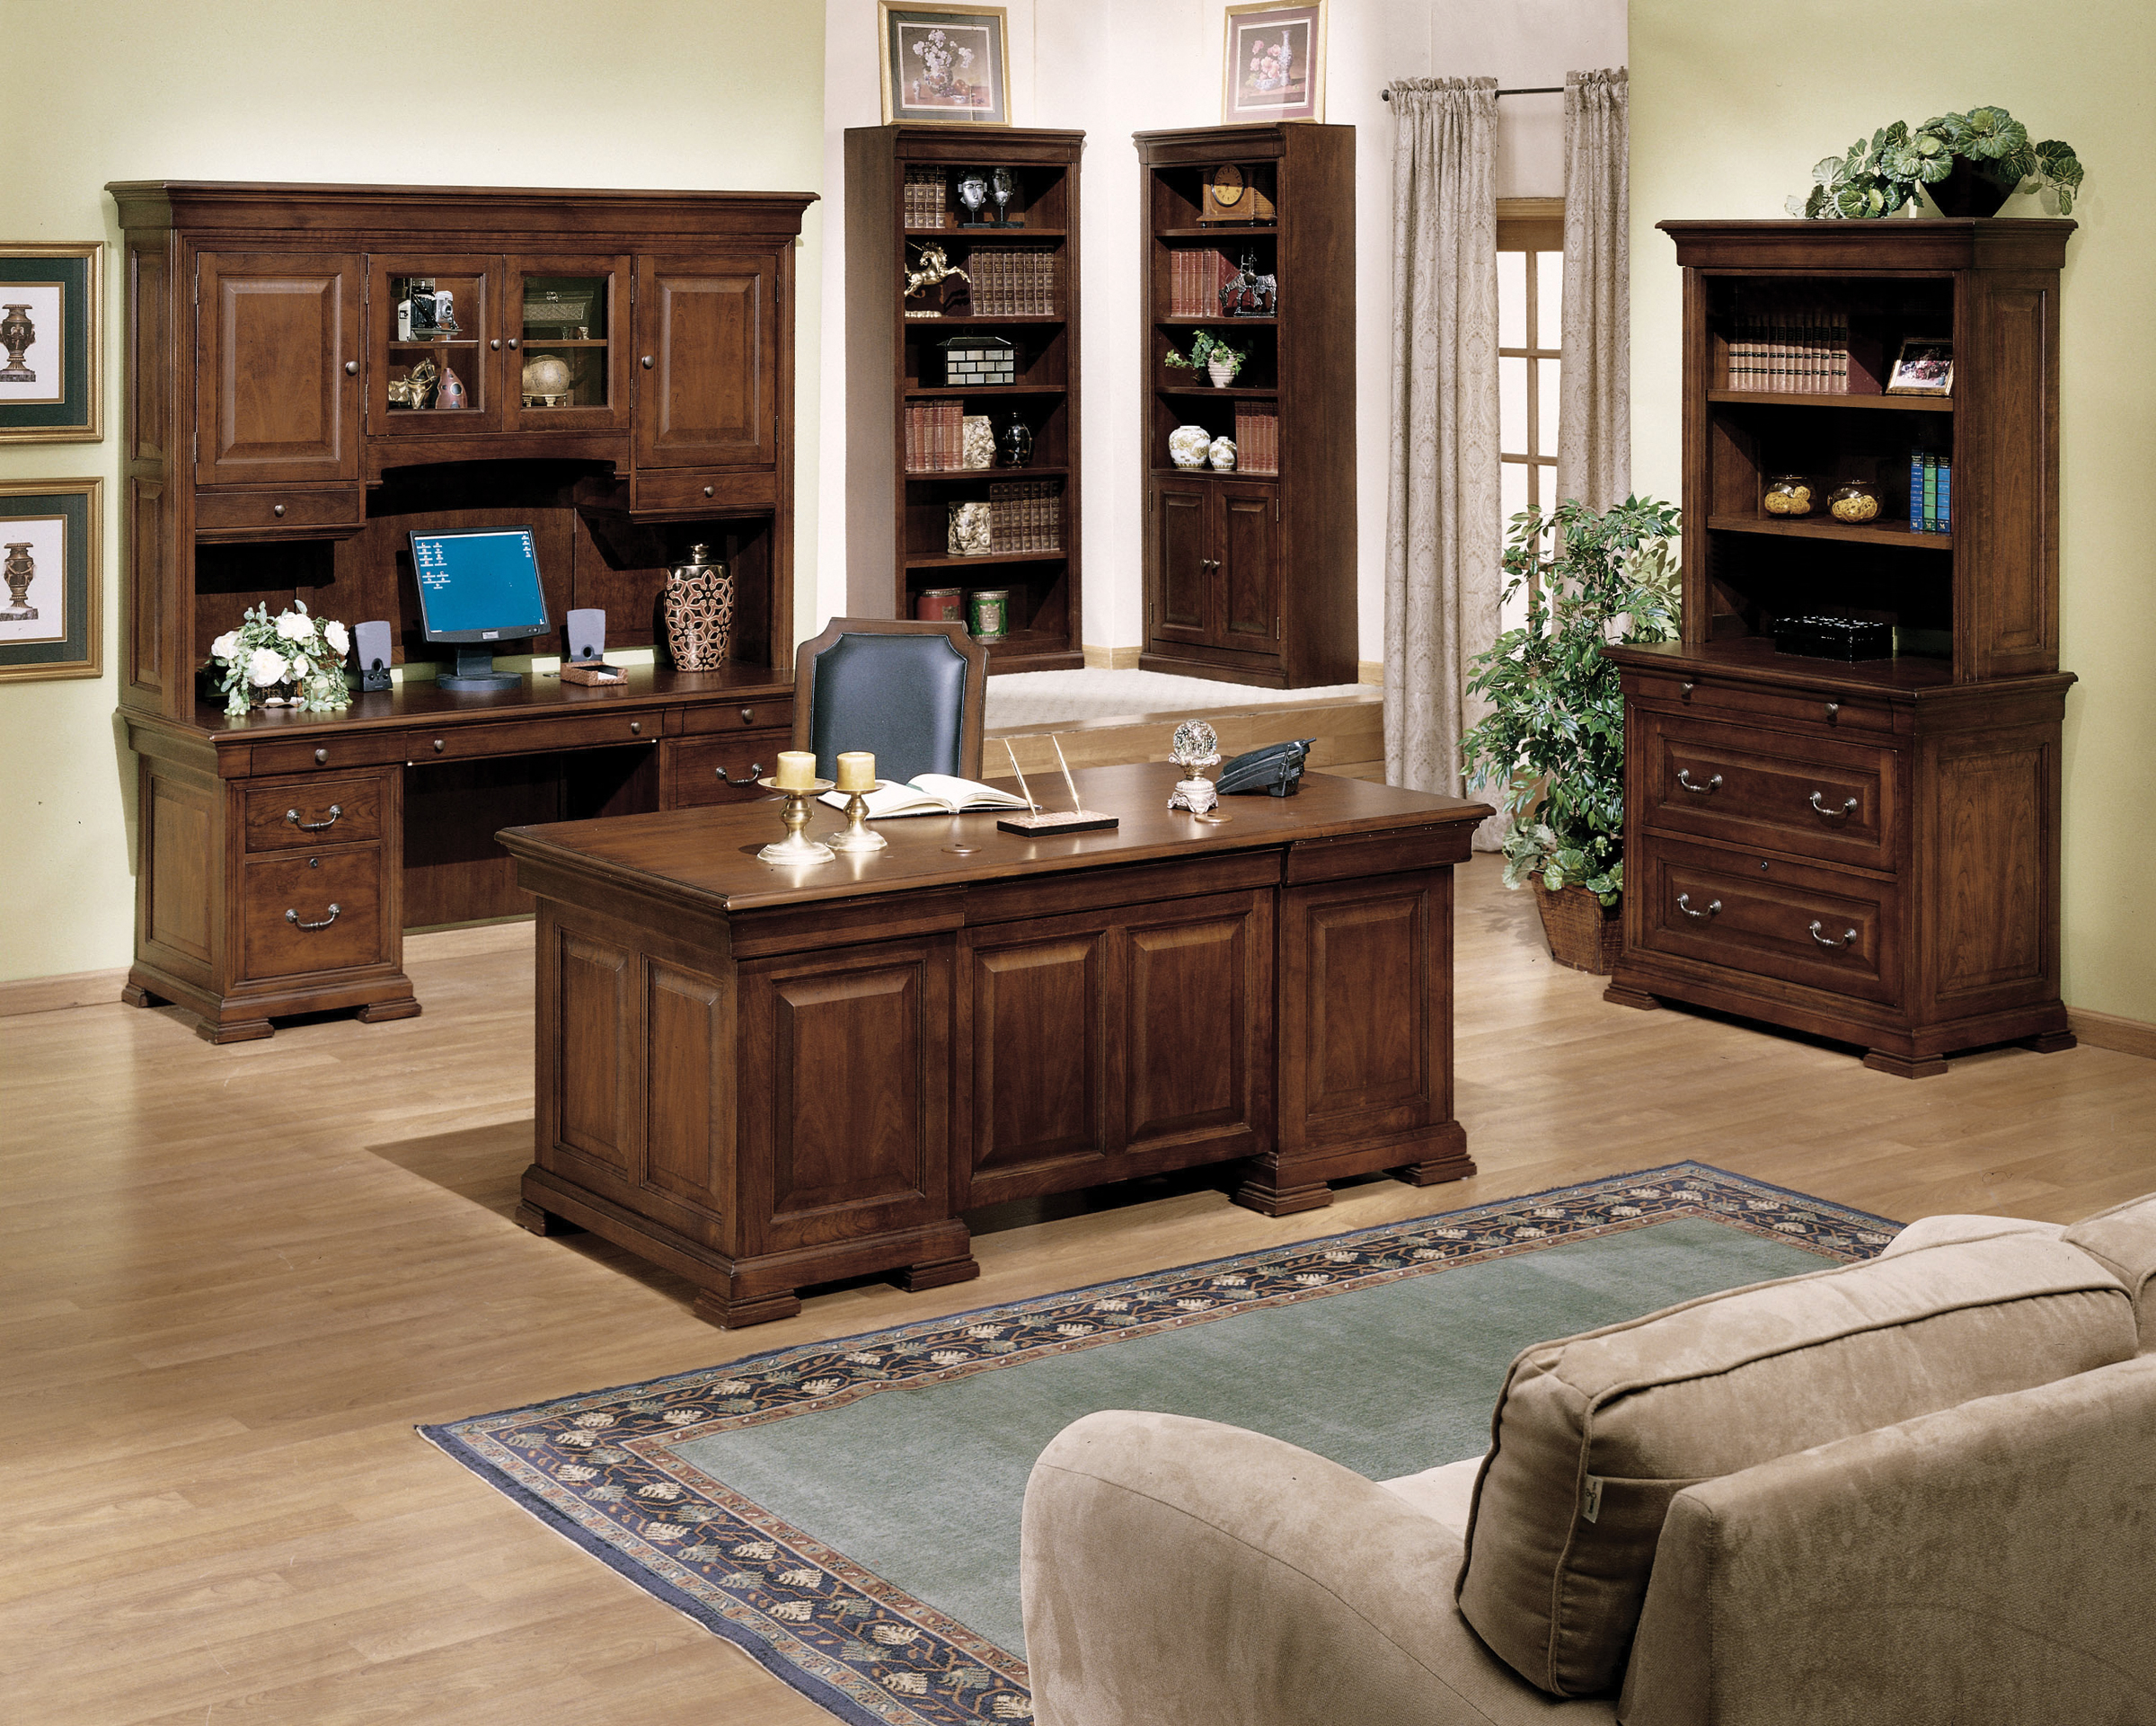 Bureau Authentic Style Office Layout And Design Plan Guide To Winners Only Furniture